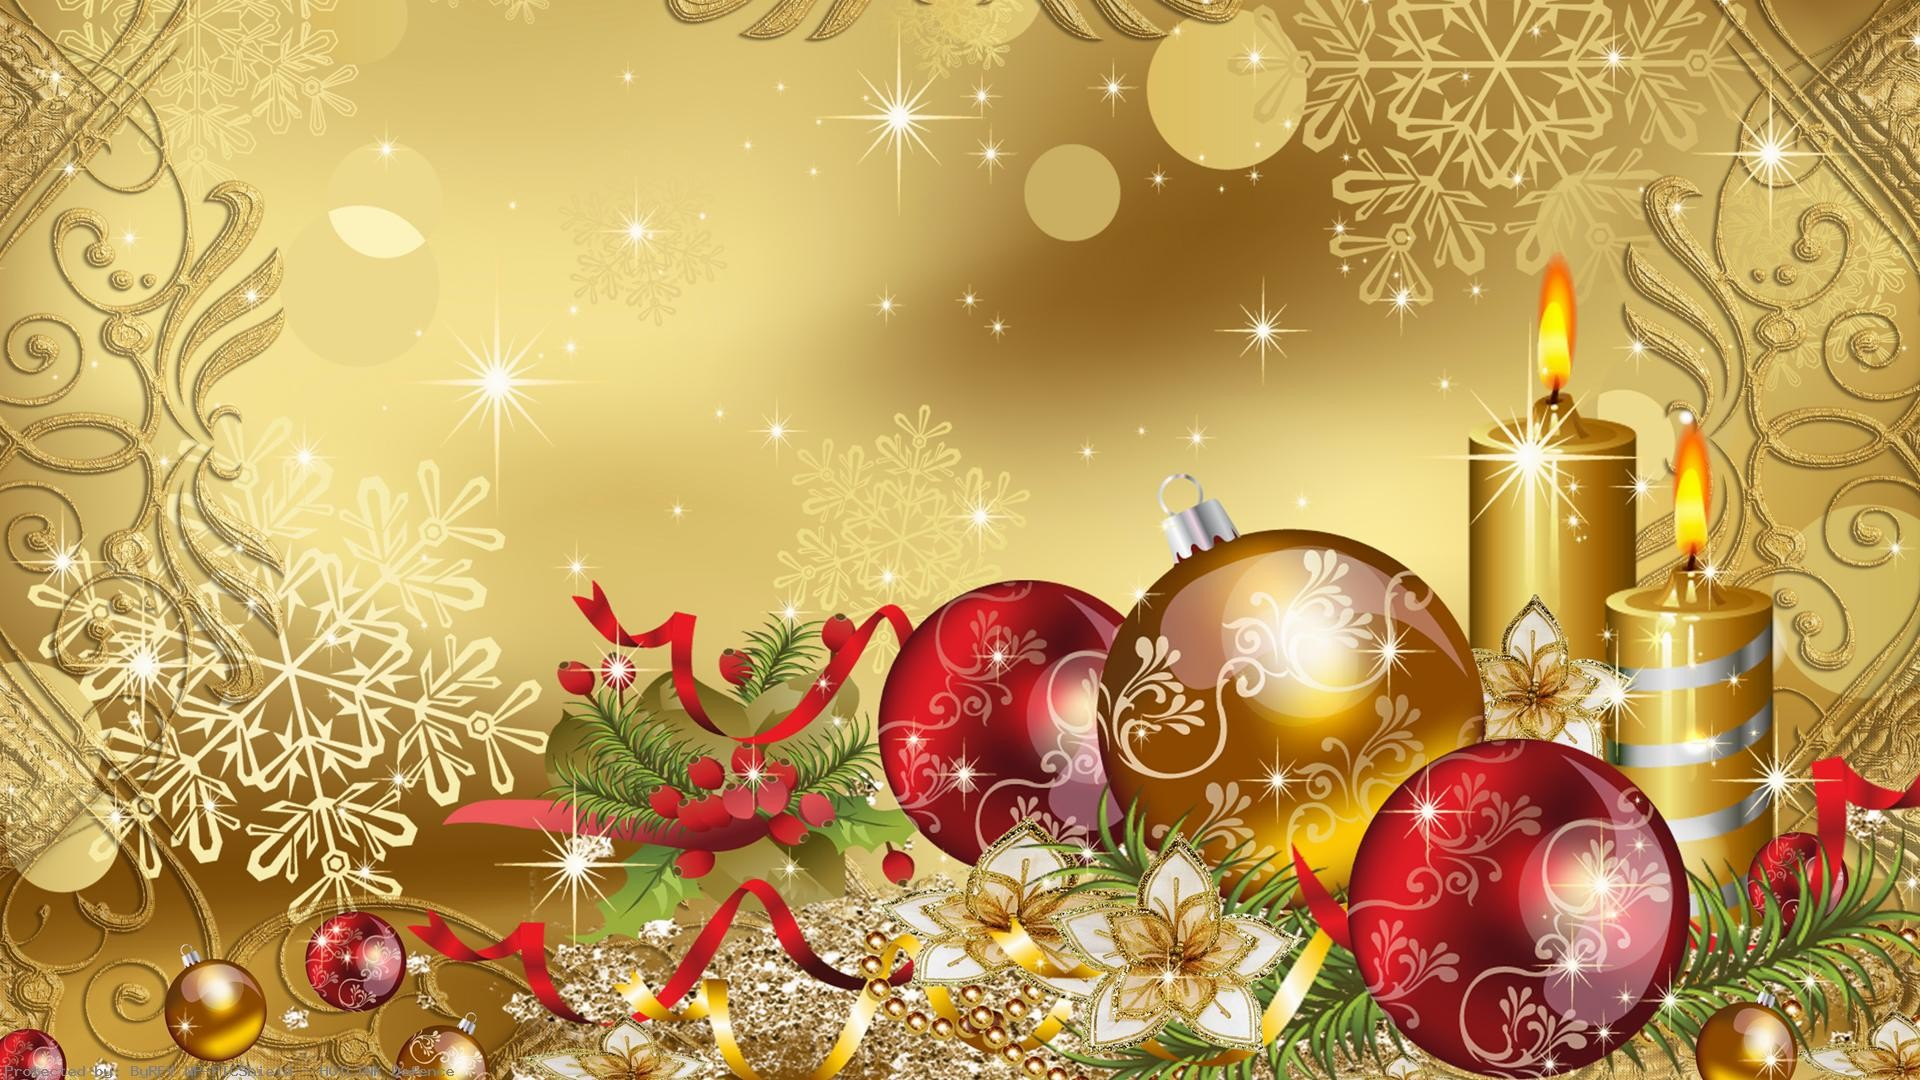 Christmas Live Wallpaper For Desktop 51 Images